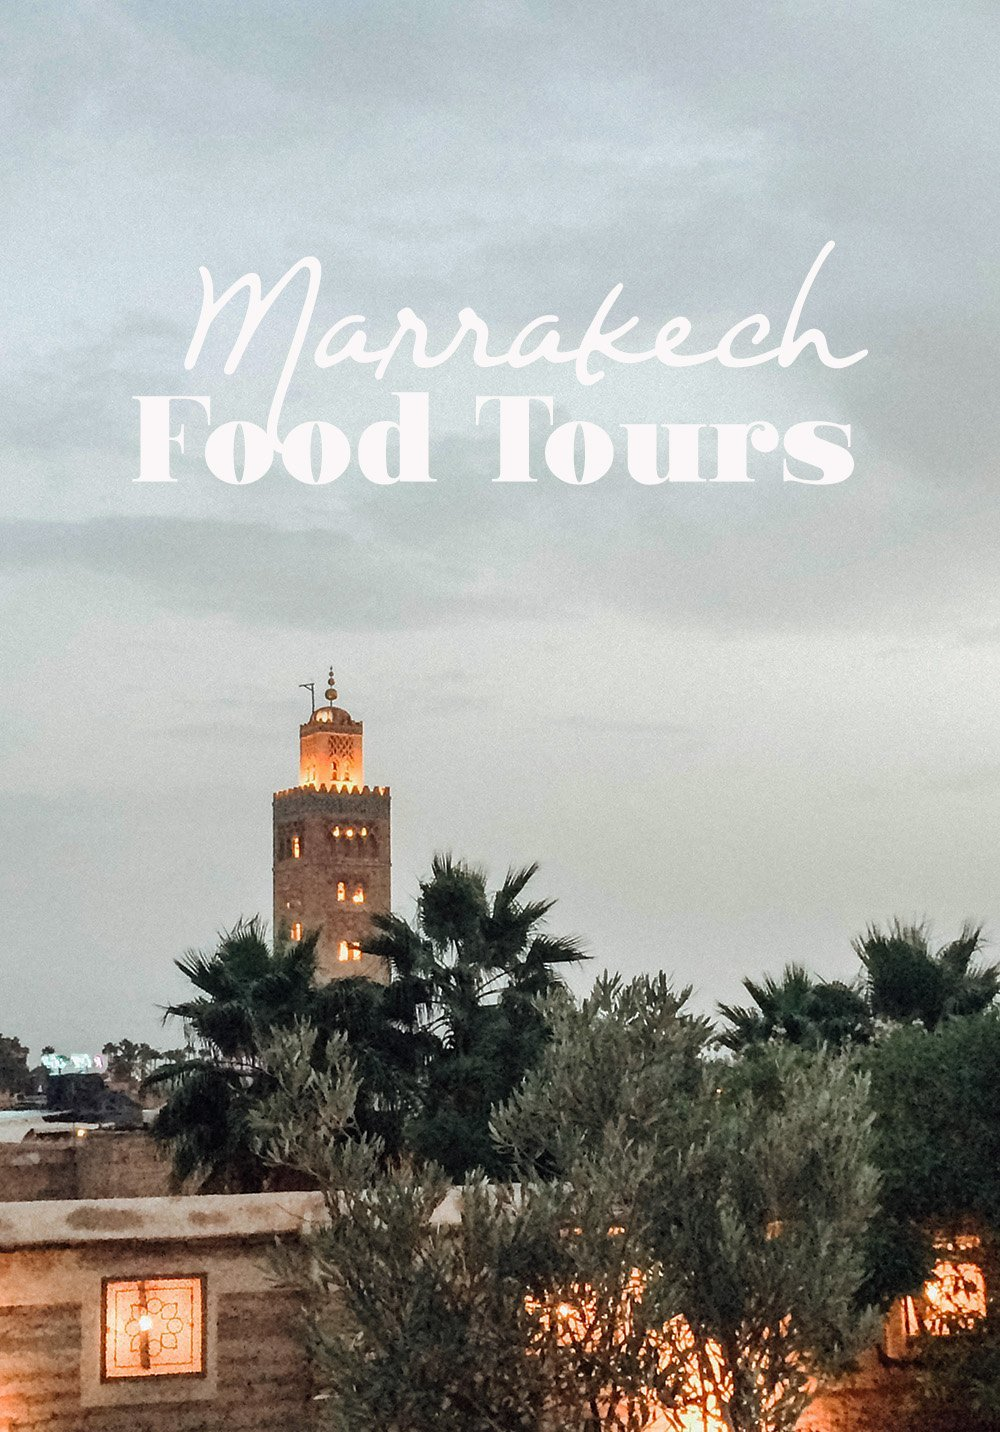 Want to discover Moroccan cuisine but don't know where to start? Join Marrakech Food Tours for a for a street food tour in Marrakech! - find the best Marrakech restaurants & learn about Moroccan food. From M'semen to Moroccan snails, Tangia to sheep head, typical sweets and of course, the best couscous in Marrakech. #morocco #marrakech #marrakechfoodtour #foodtour #moroccanfood #couscous #tagine